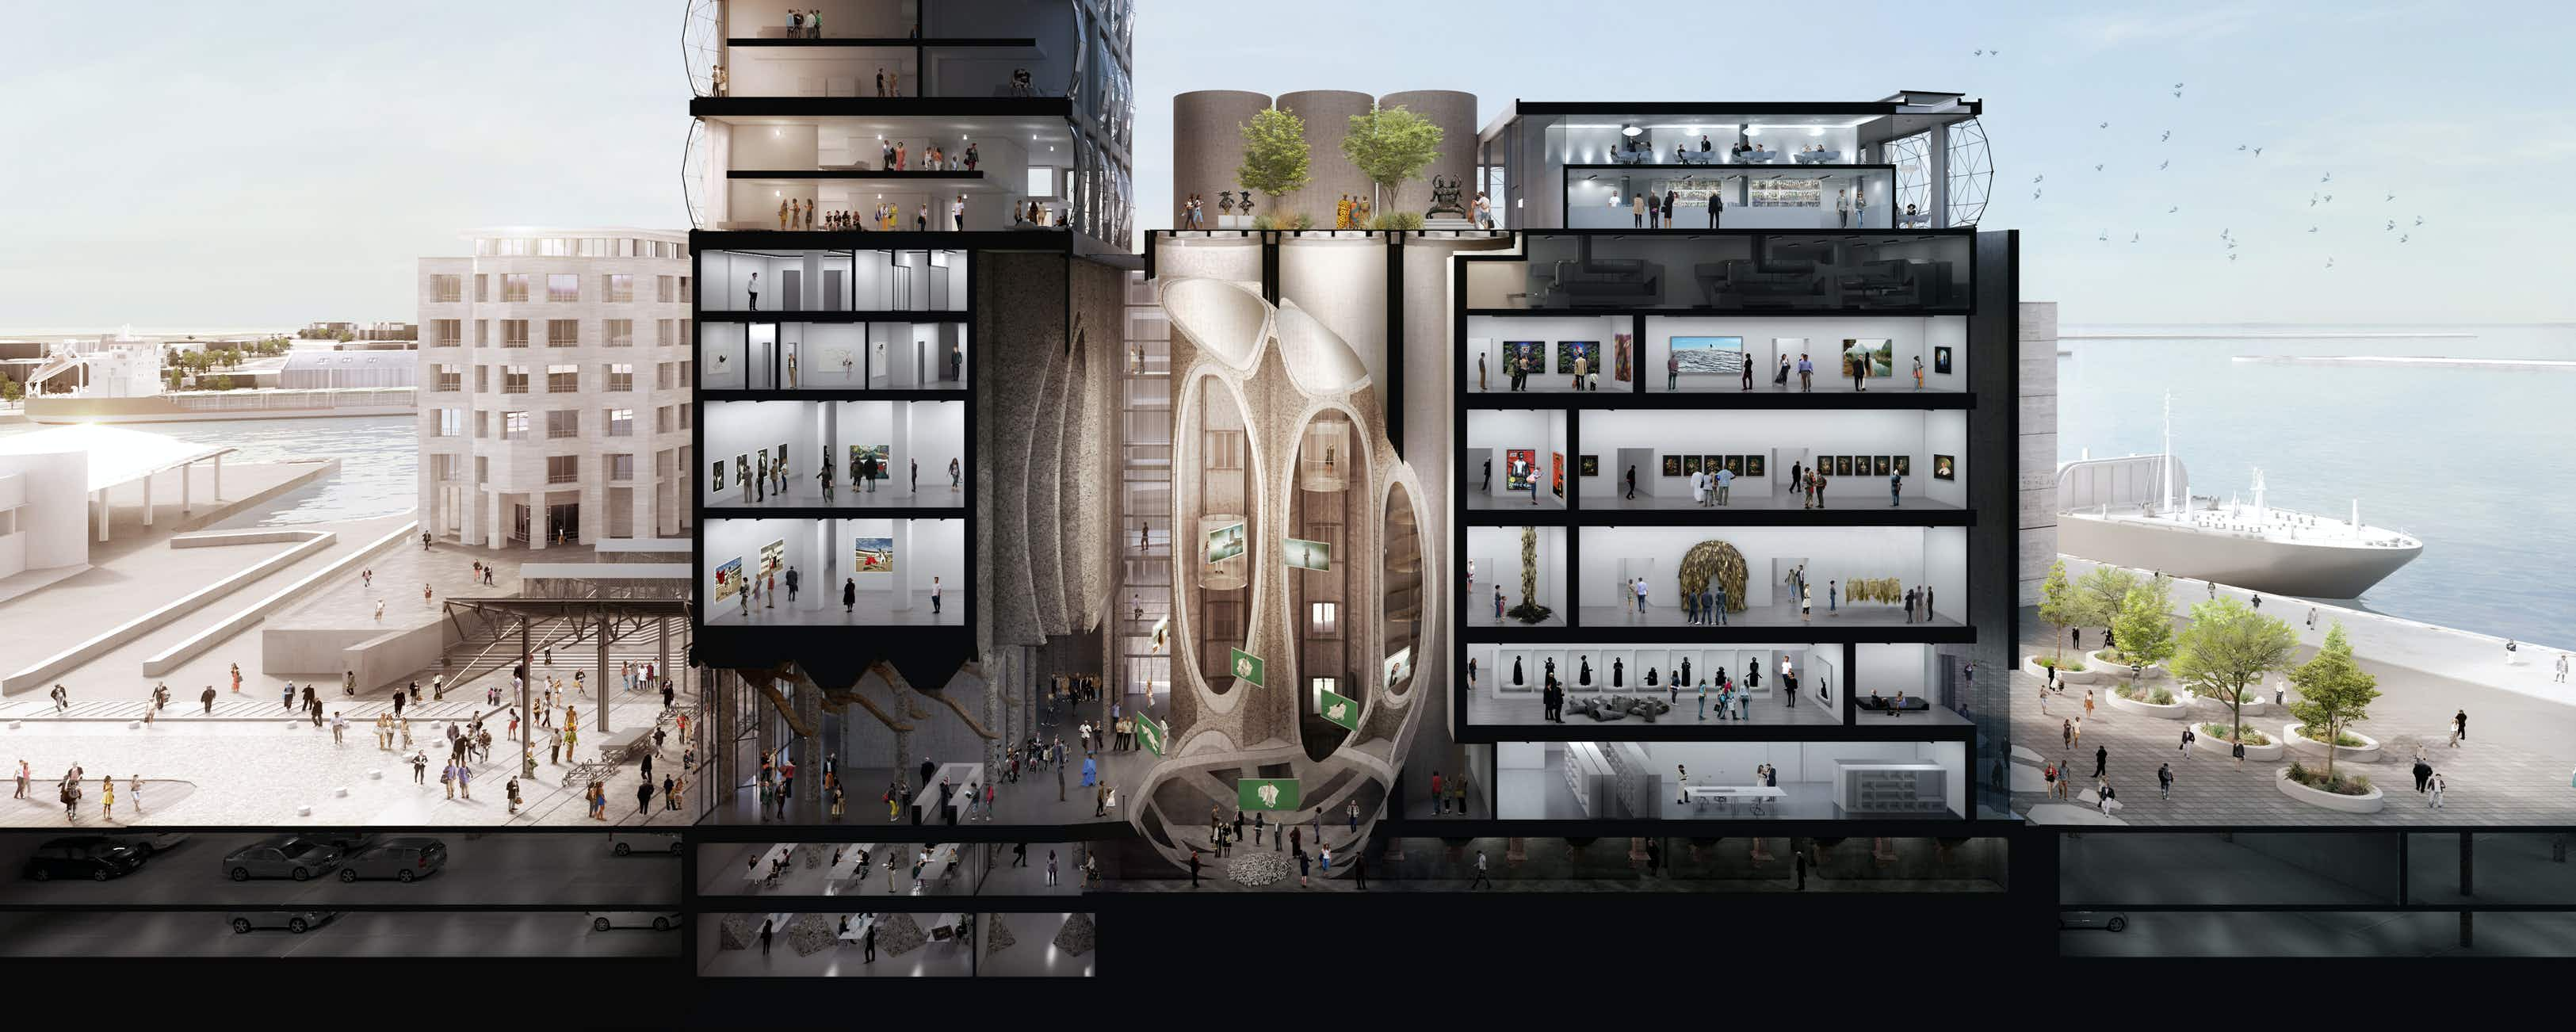 A 90-year-old grain silo is being transformed into a luxury hotel and museum in Cape Town